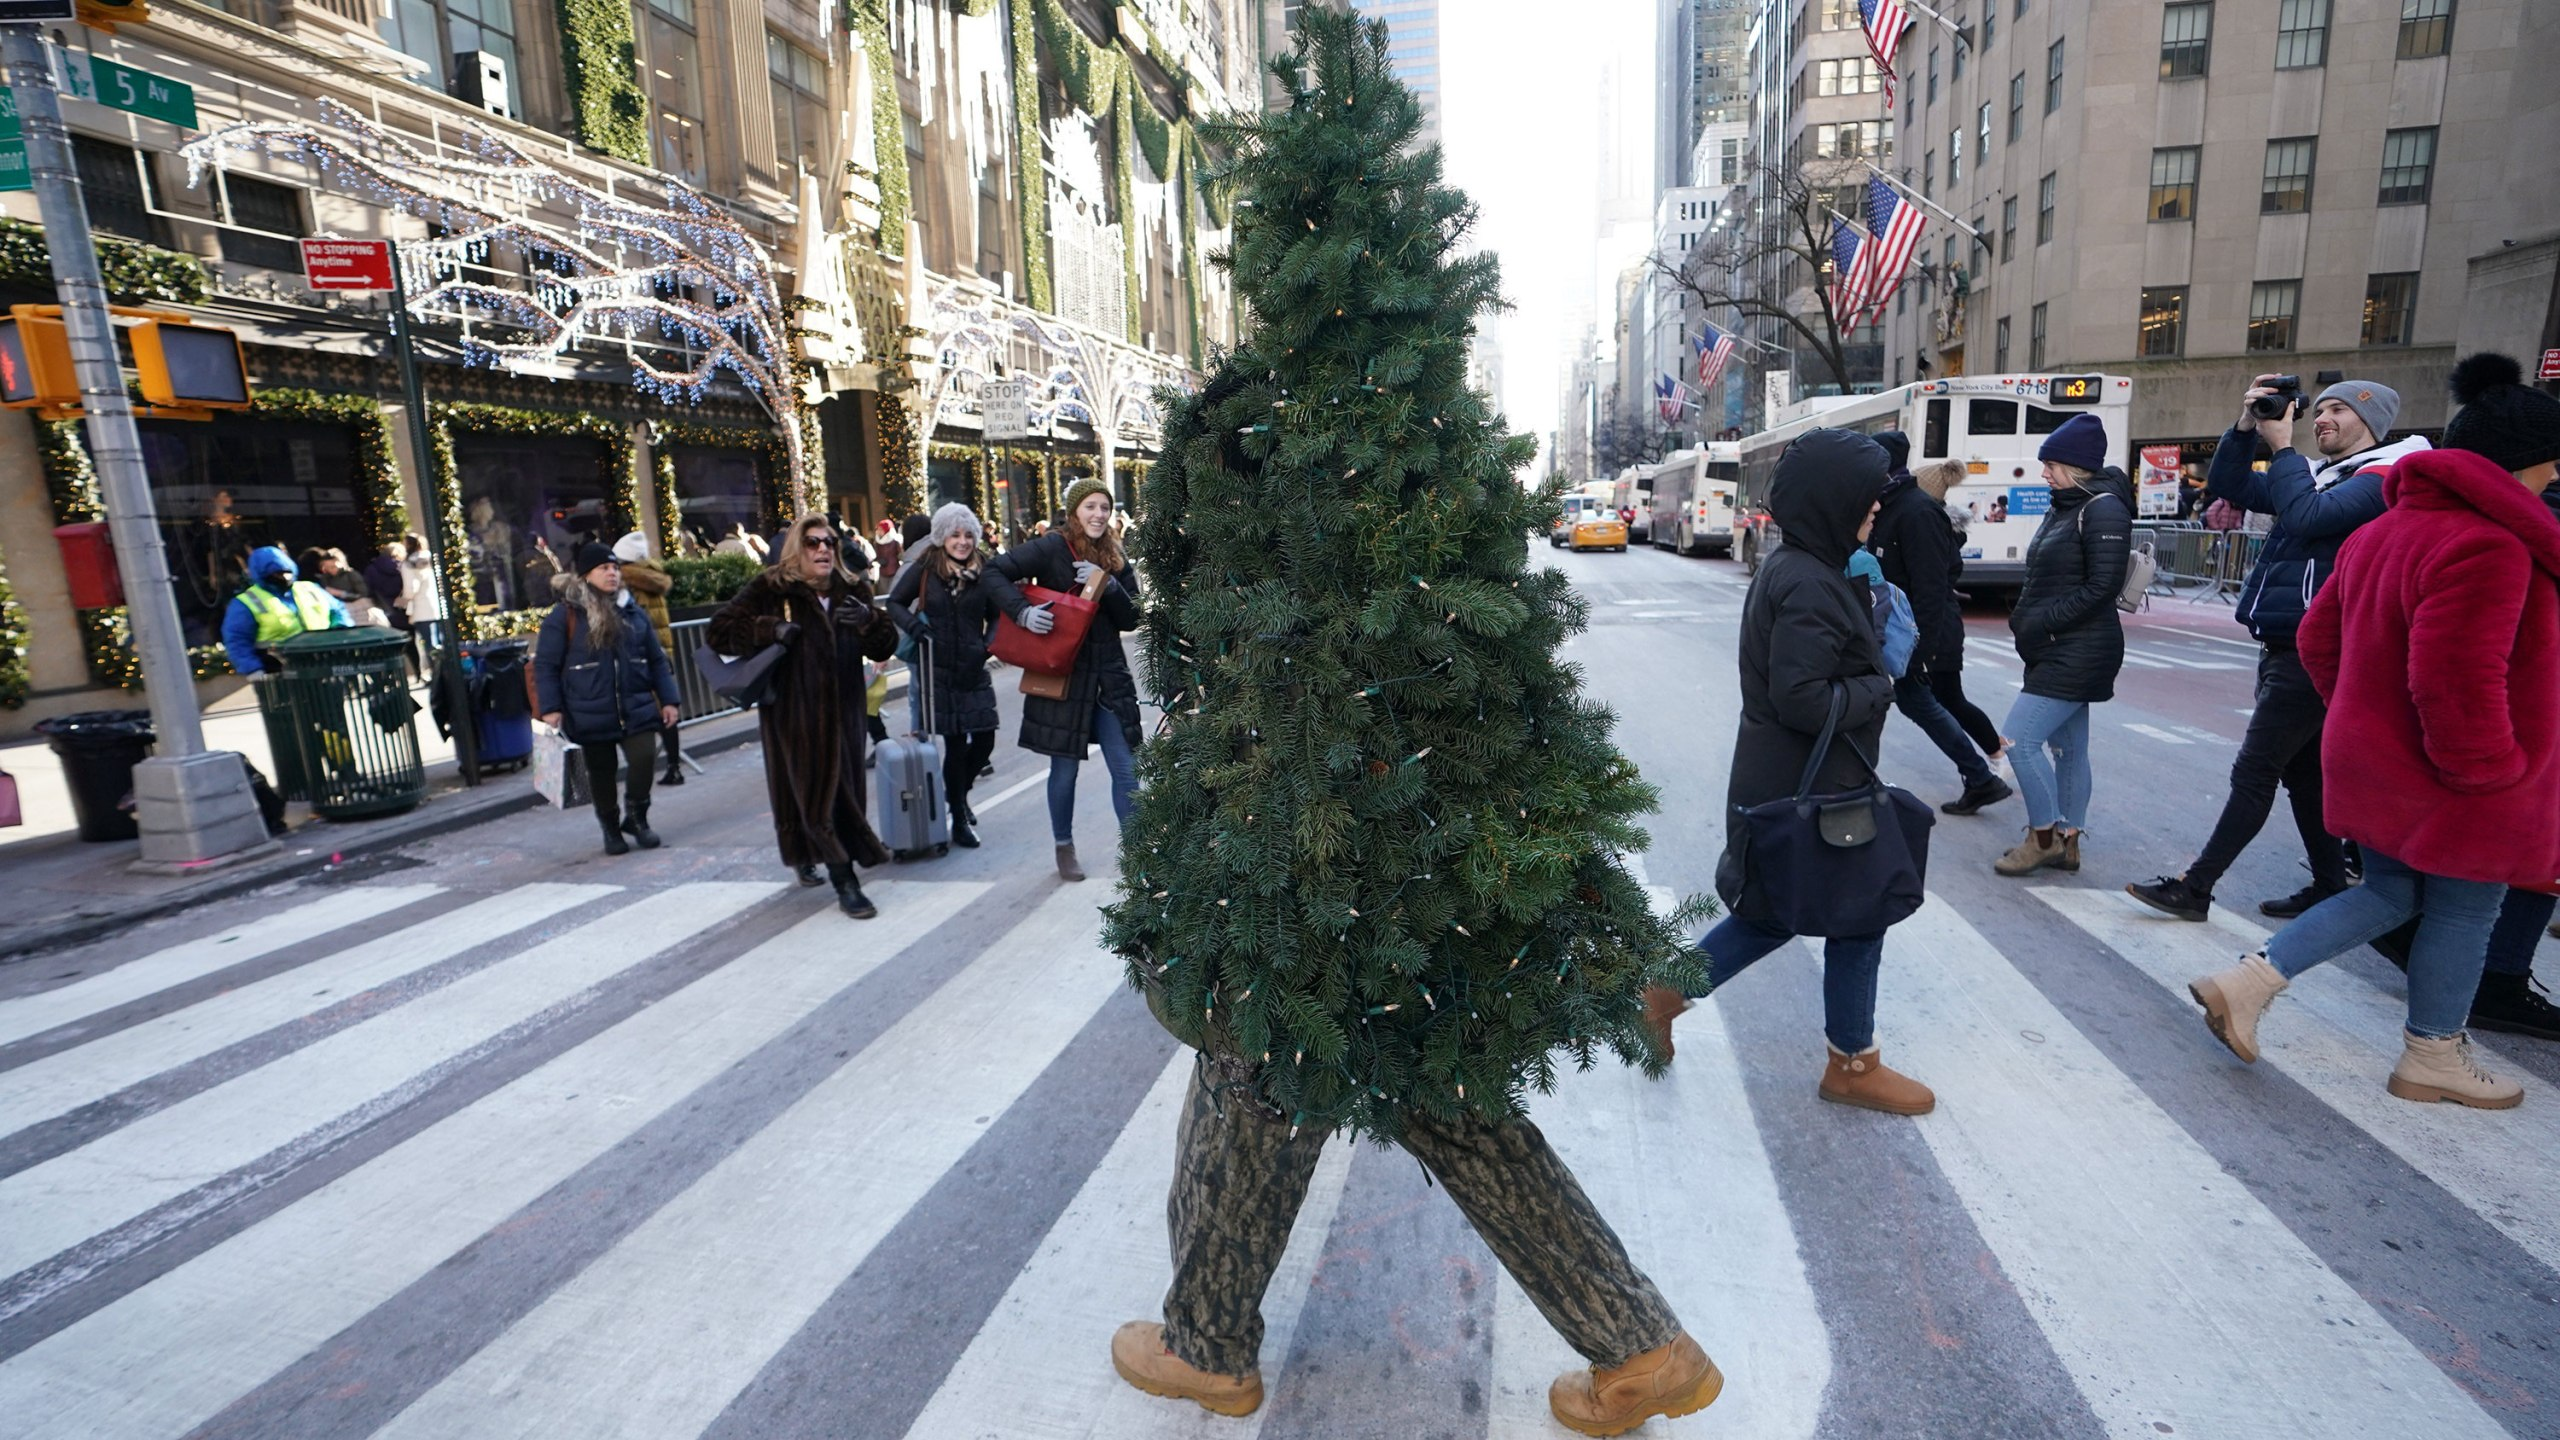 Man dressed up as Christmas tree is